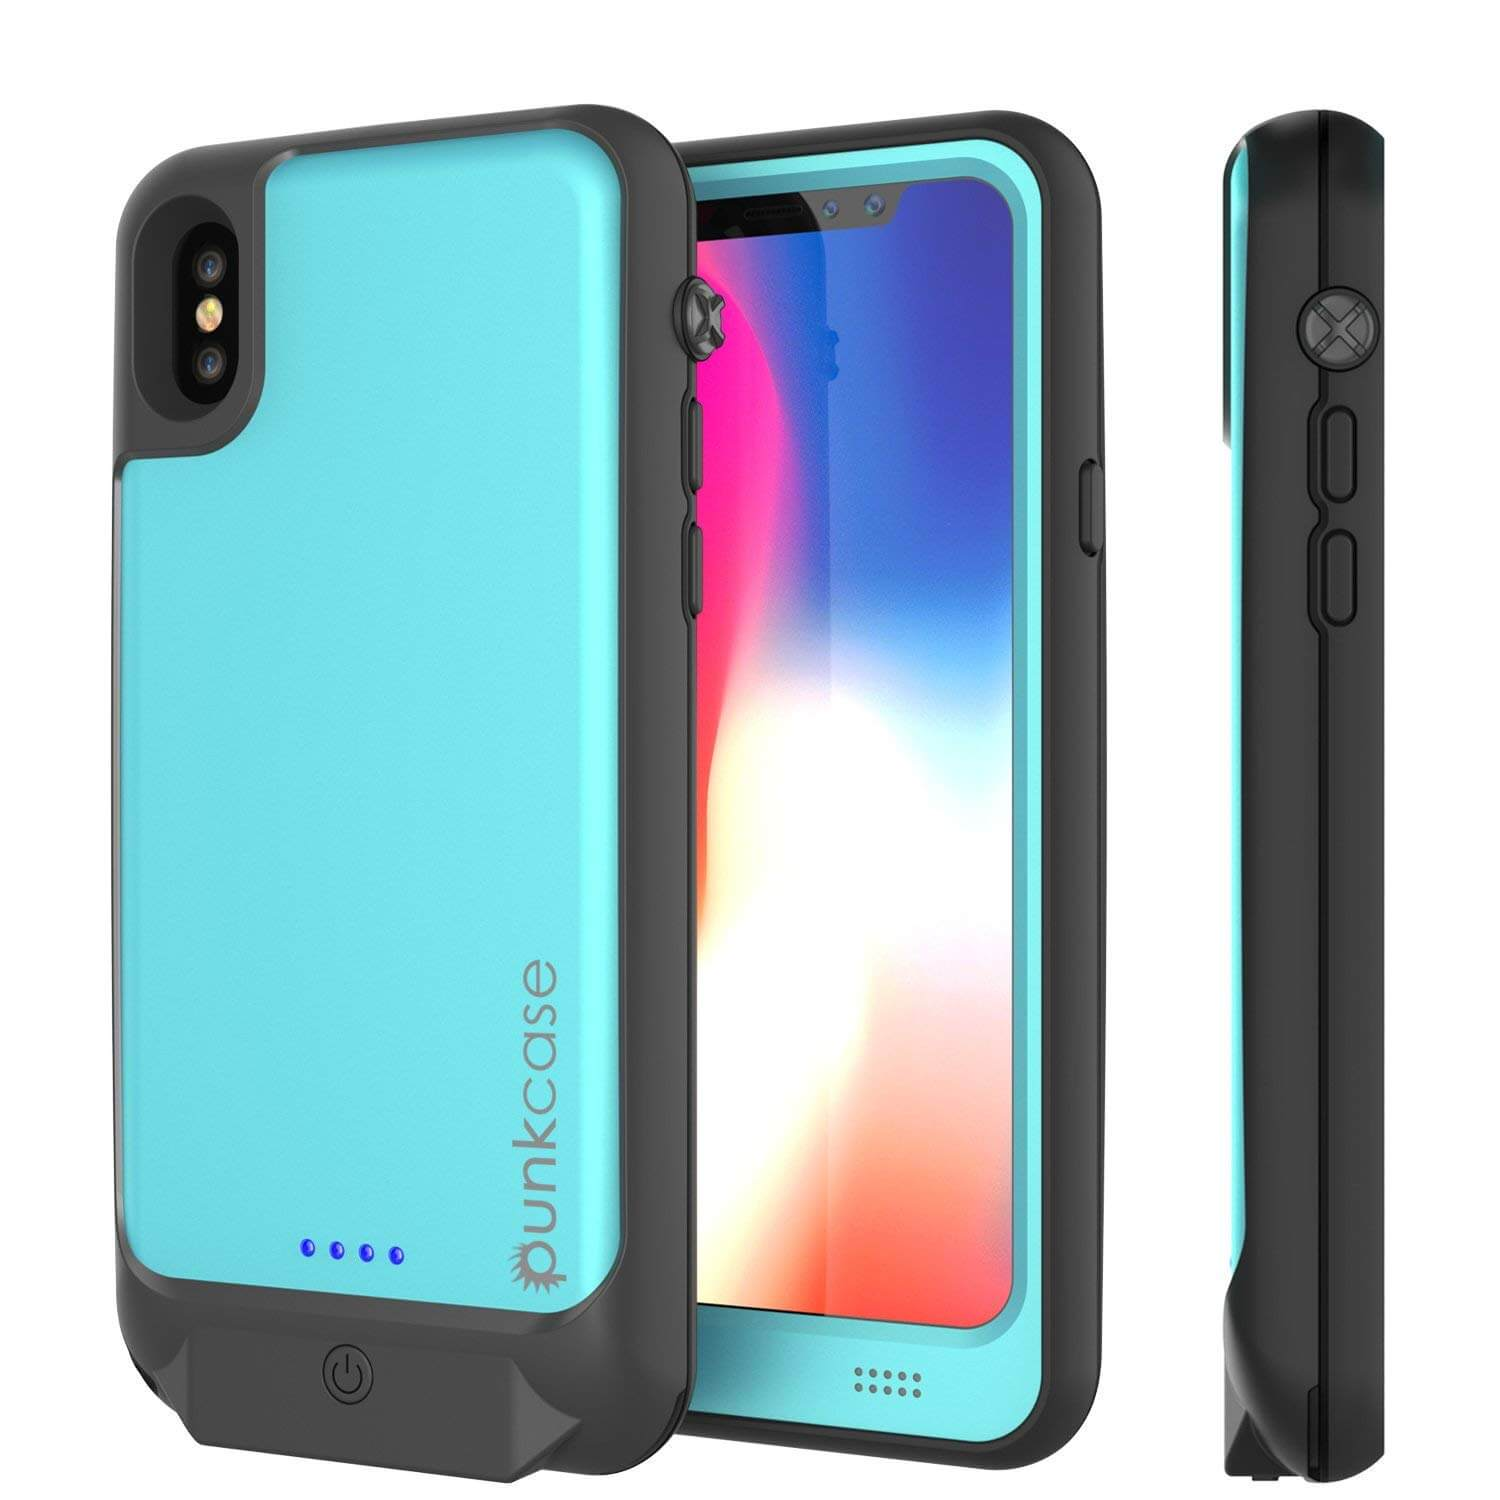 PunkJuice iPhone X Battery Case, Waterproof, IP68 Certified [Ultra Slim] [Teal]